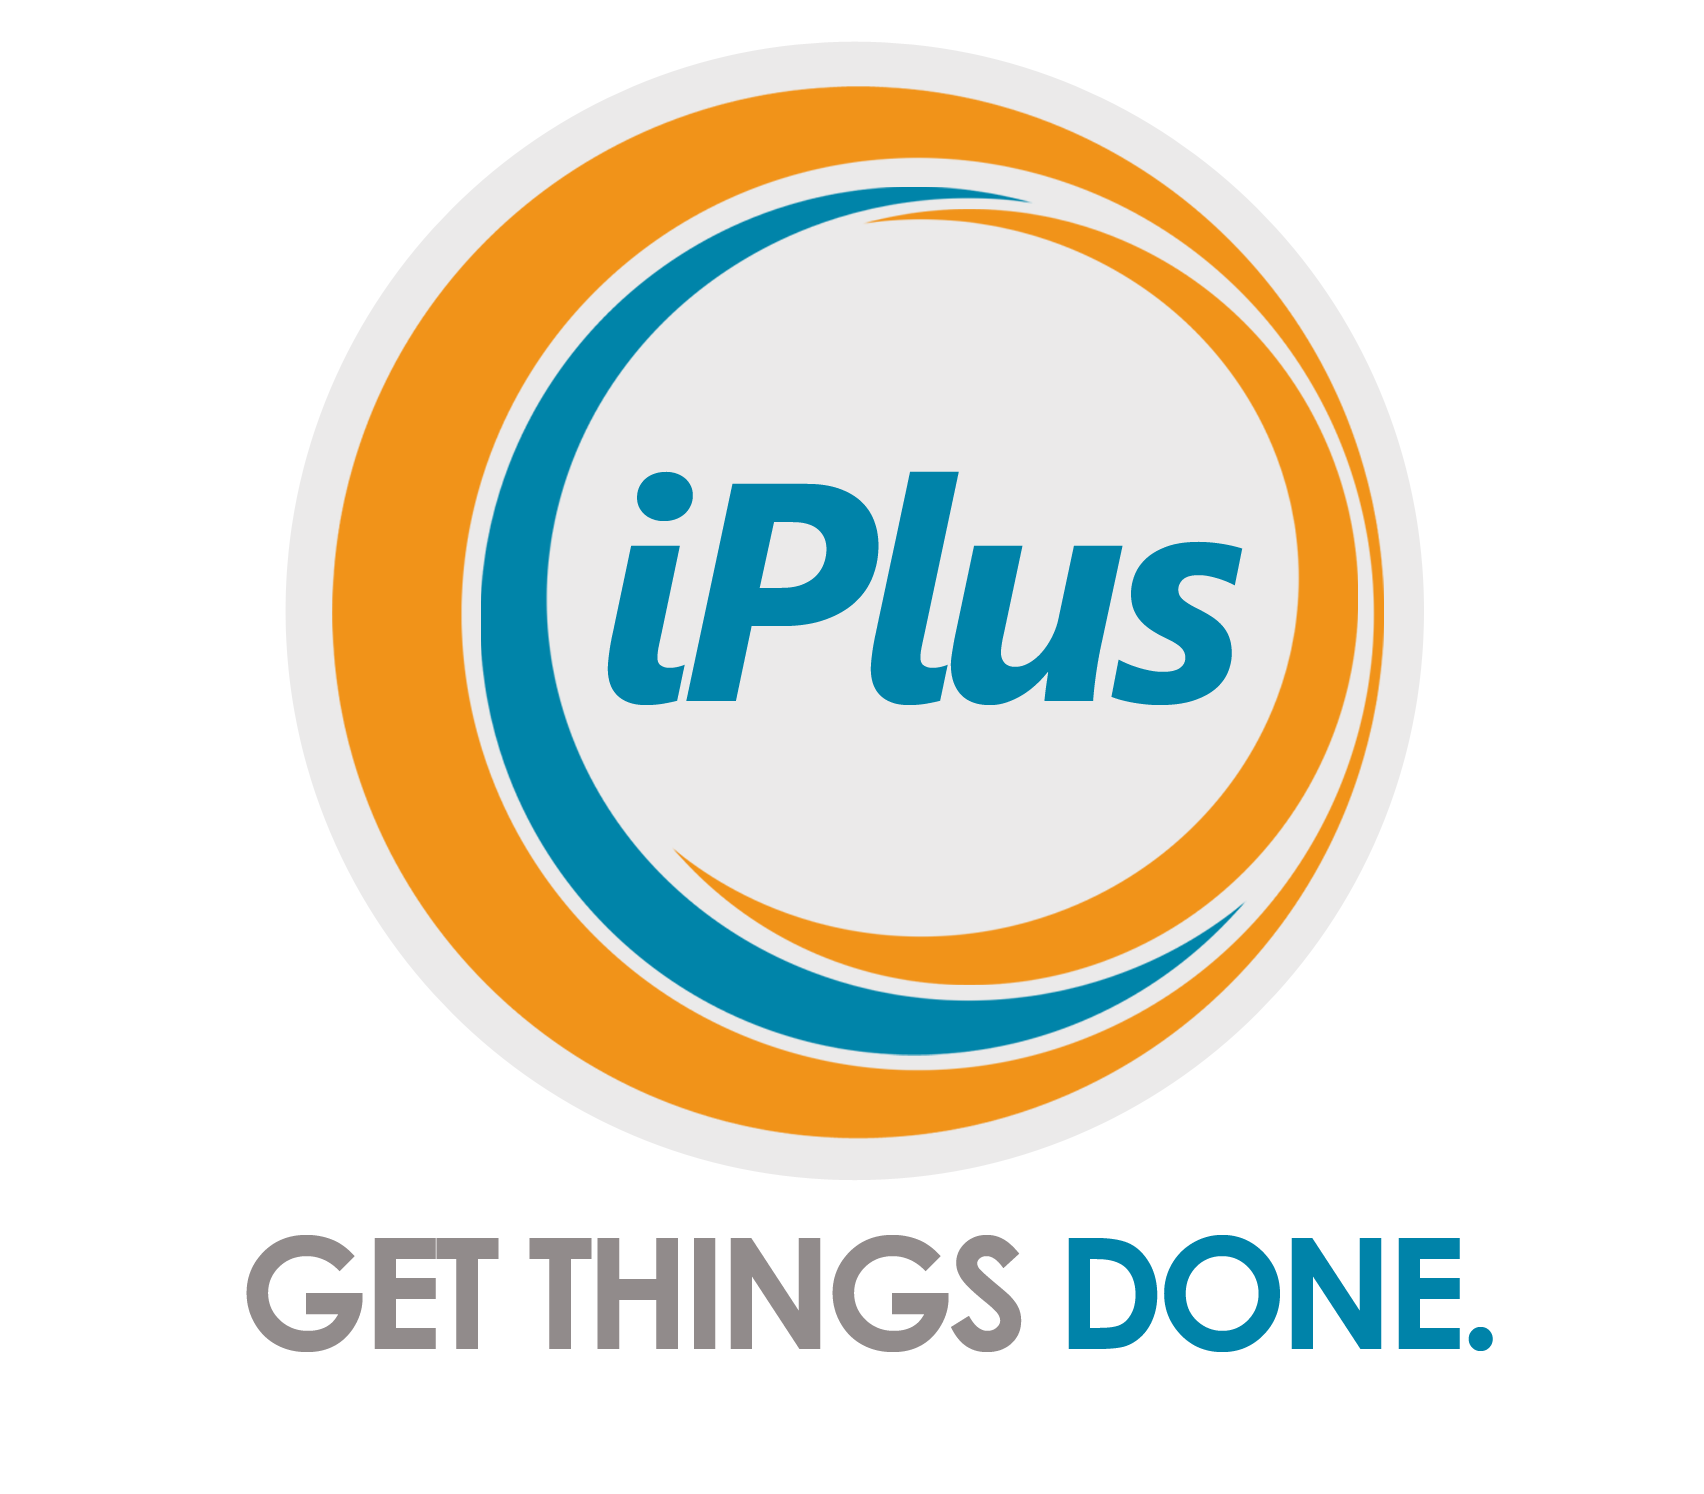 iPlus Intelligent Network Inc.